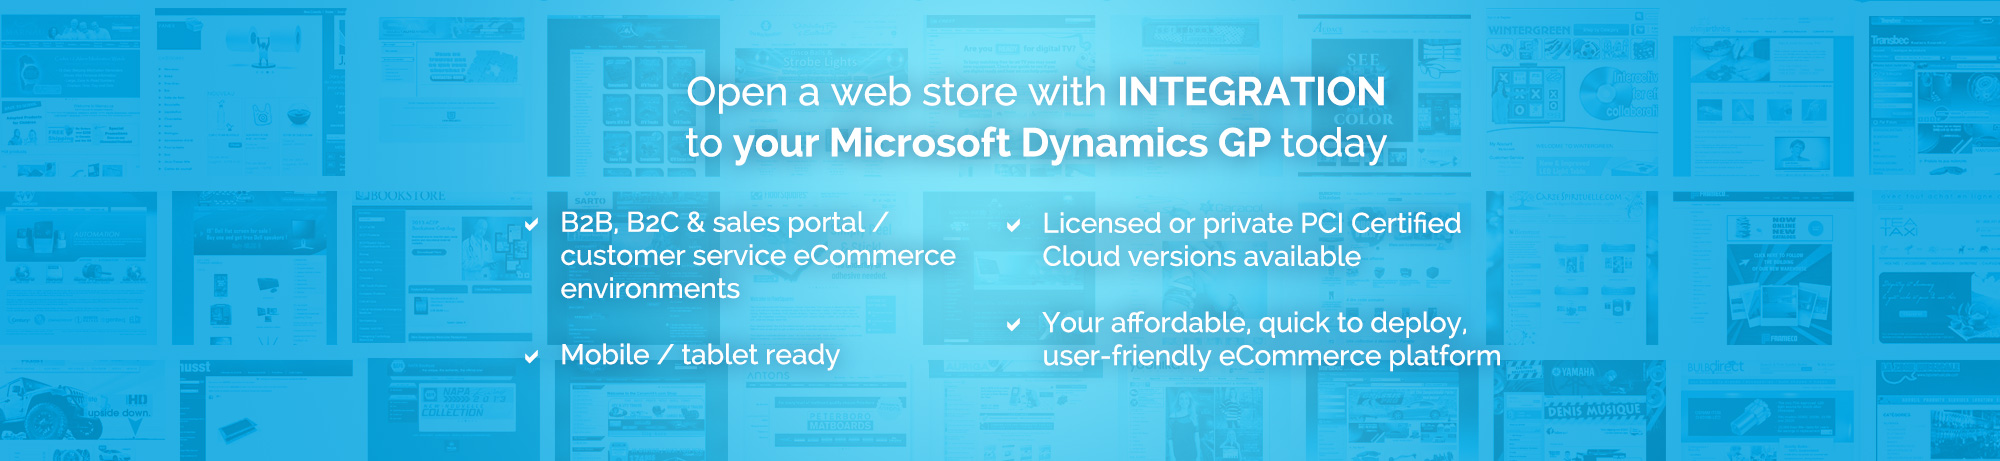 Open a web store with an integration to your Dynamics GP